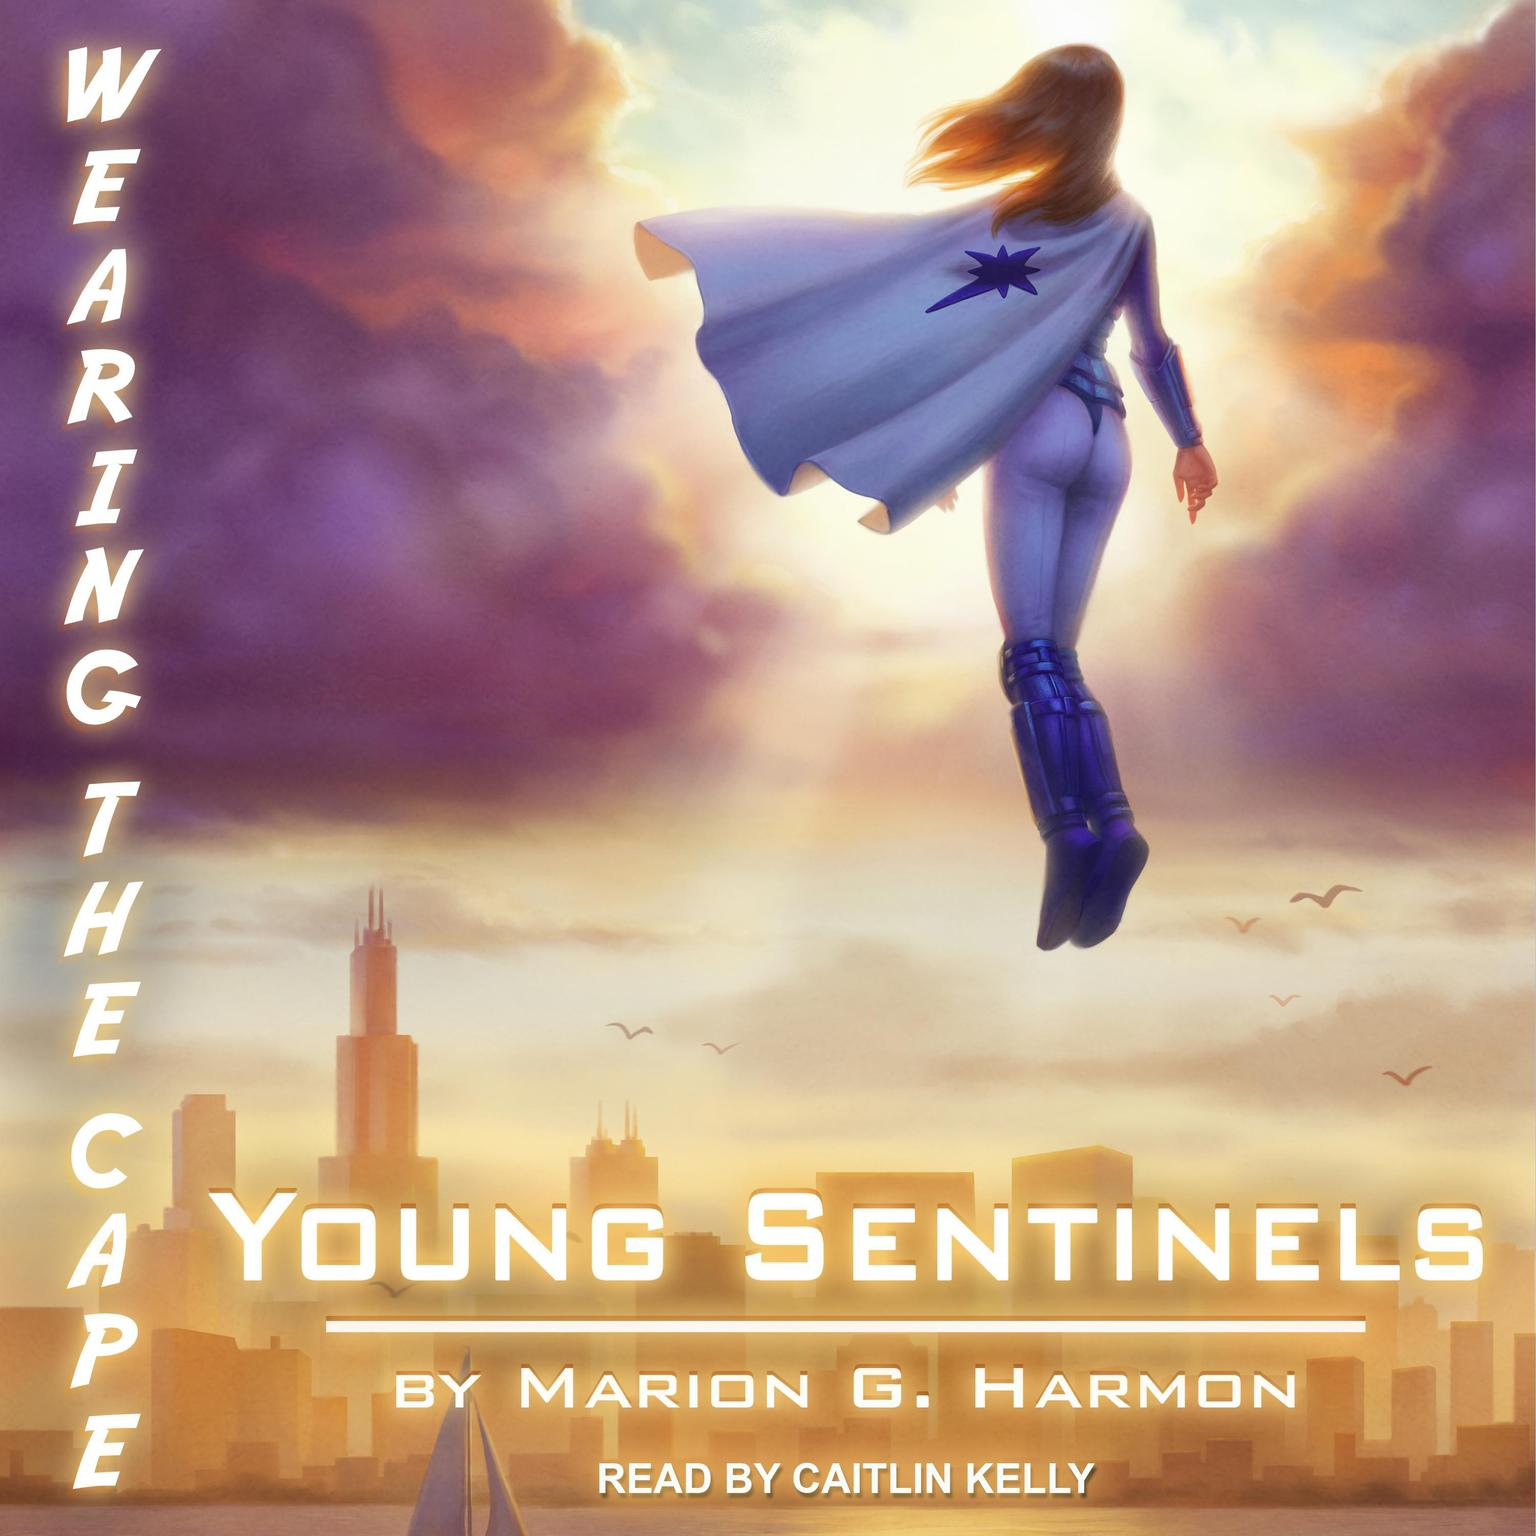 Printable Young Sentinels Audiobook Cover Art